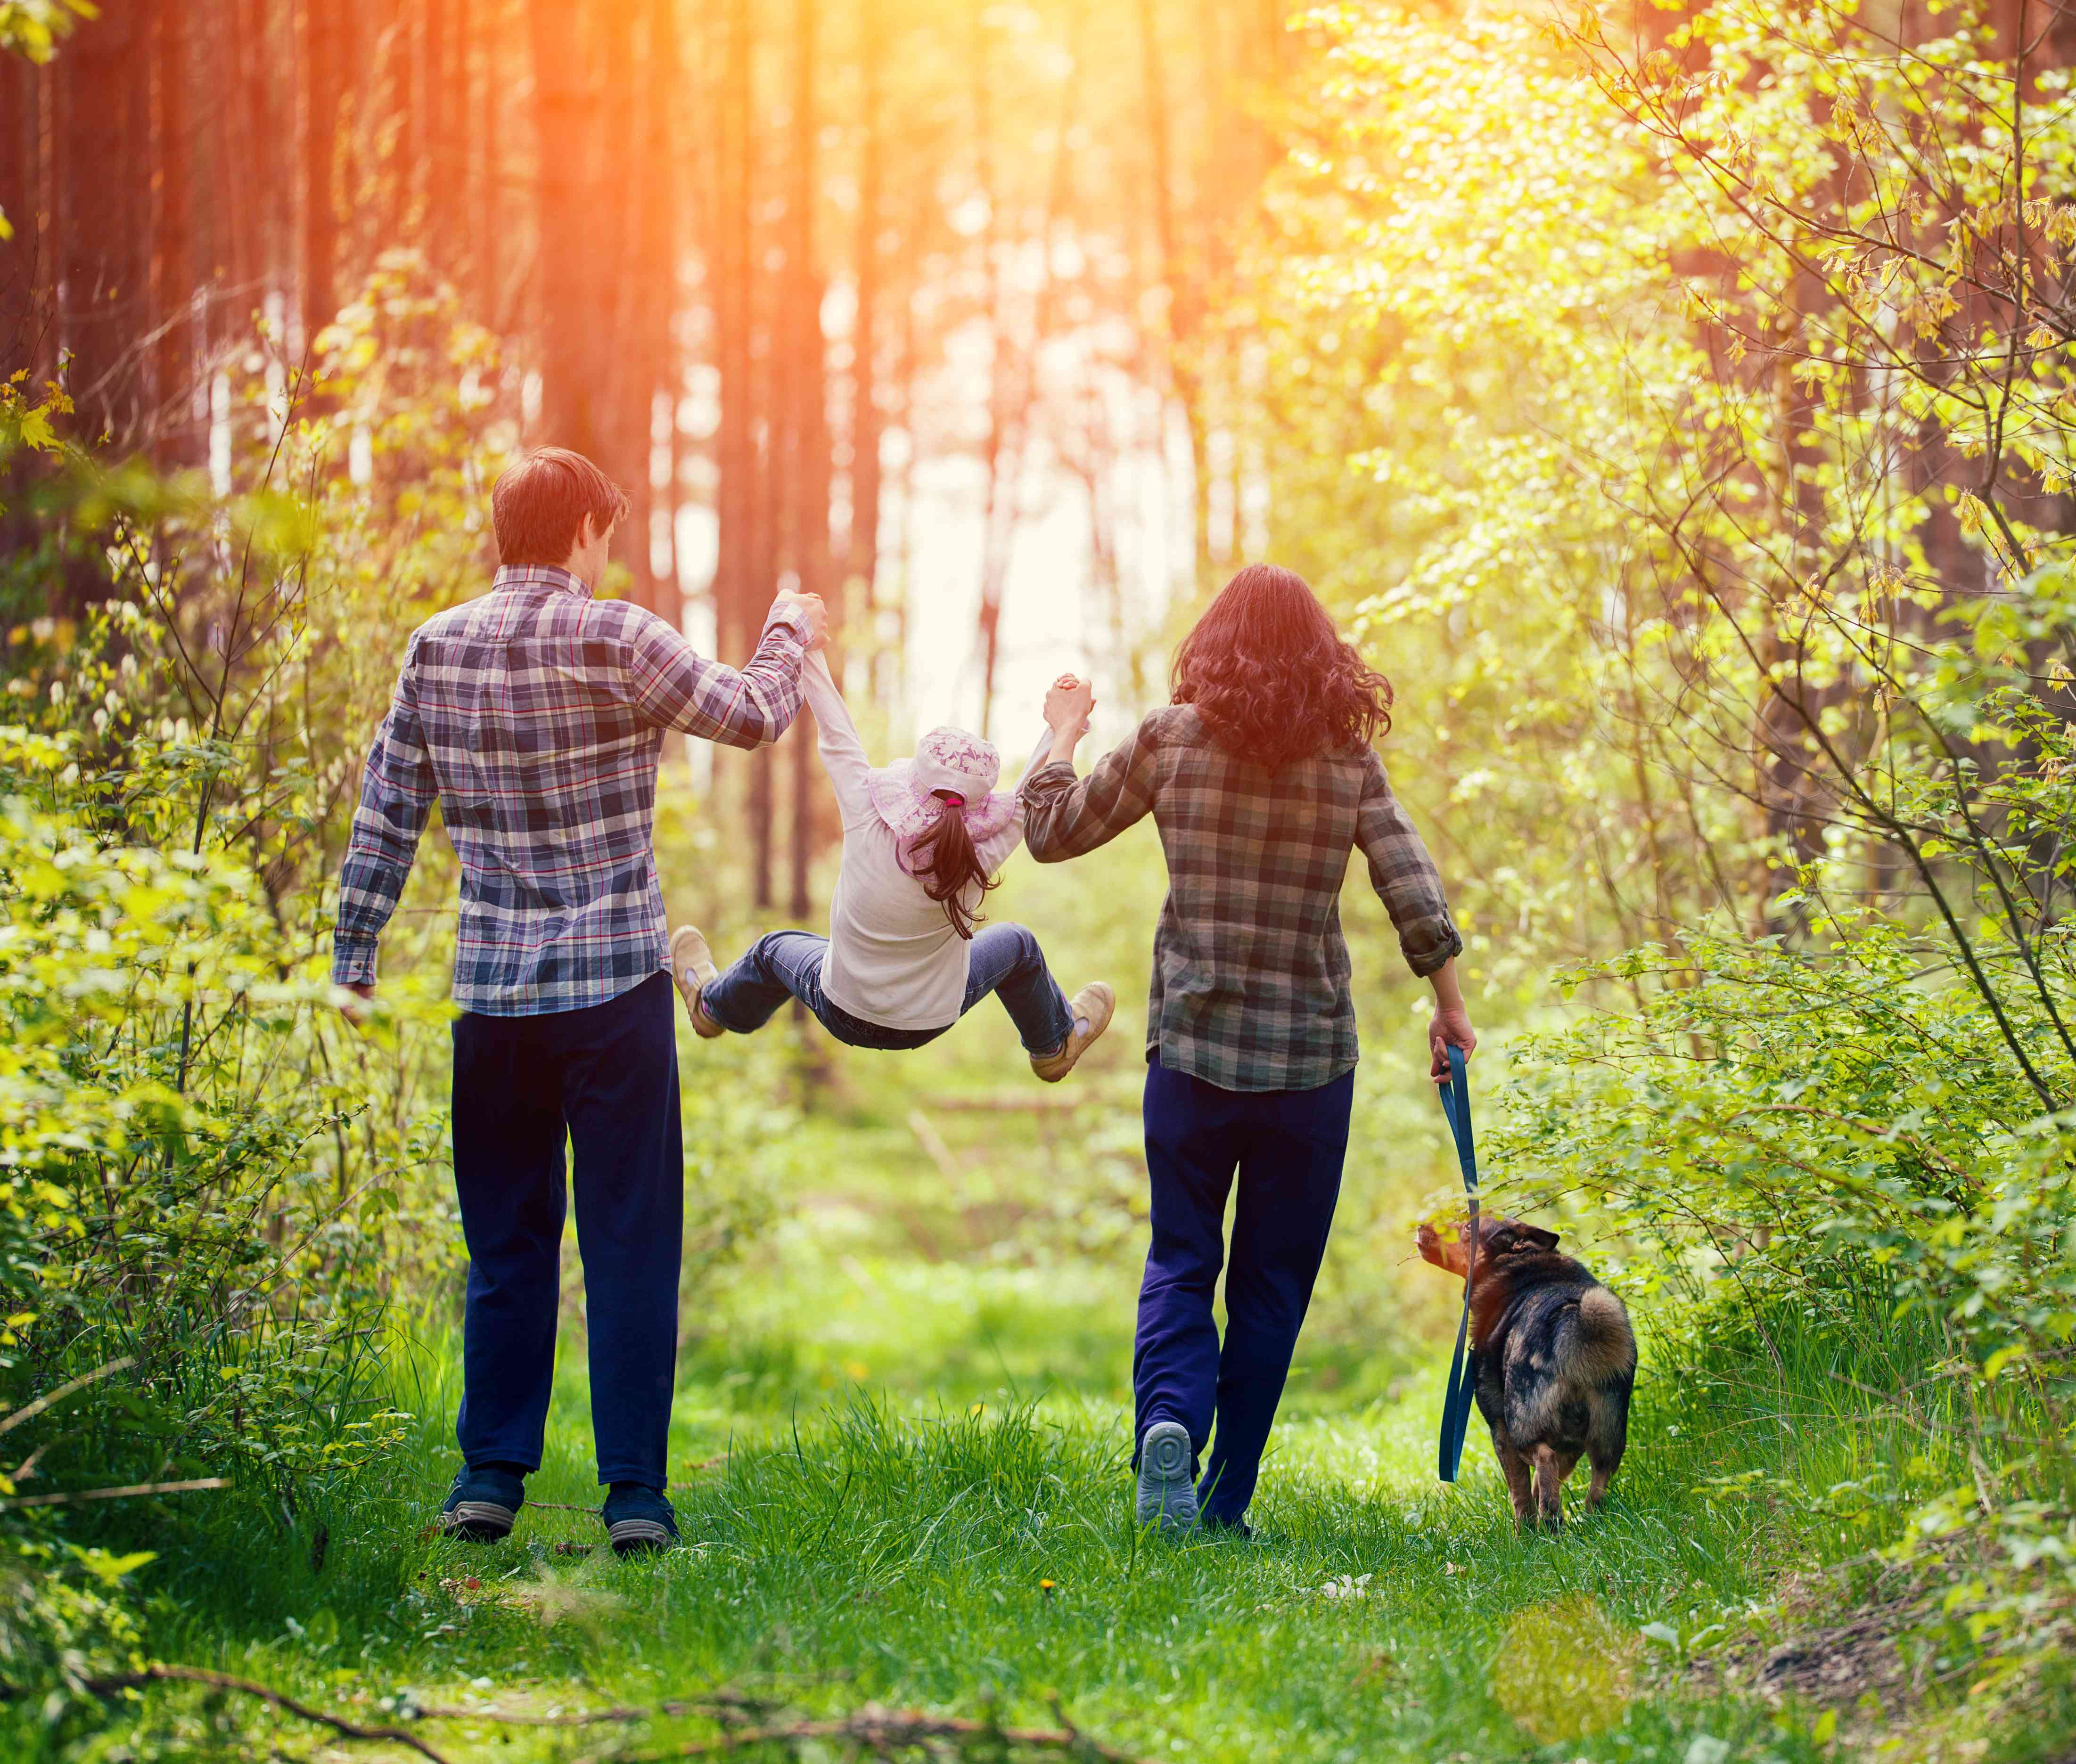 parents and kid and dog in nature